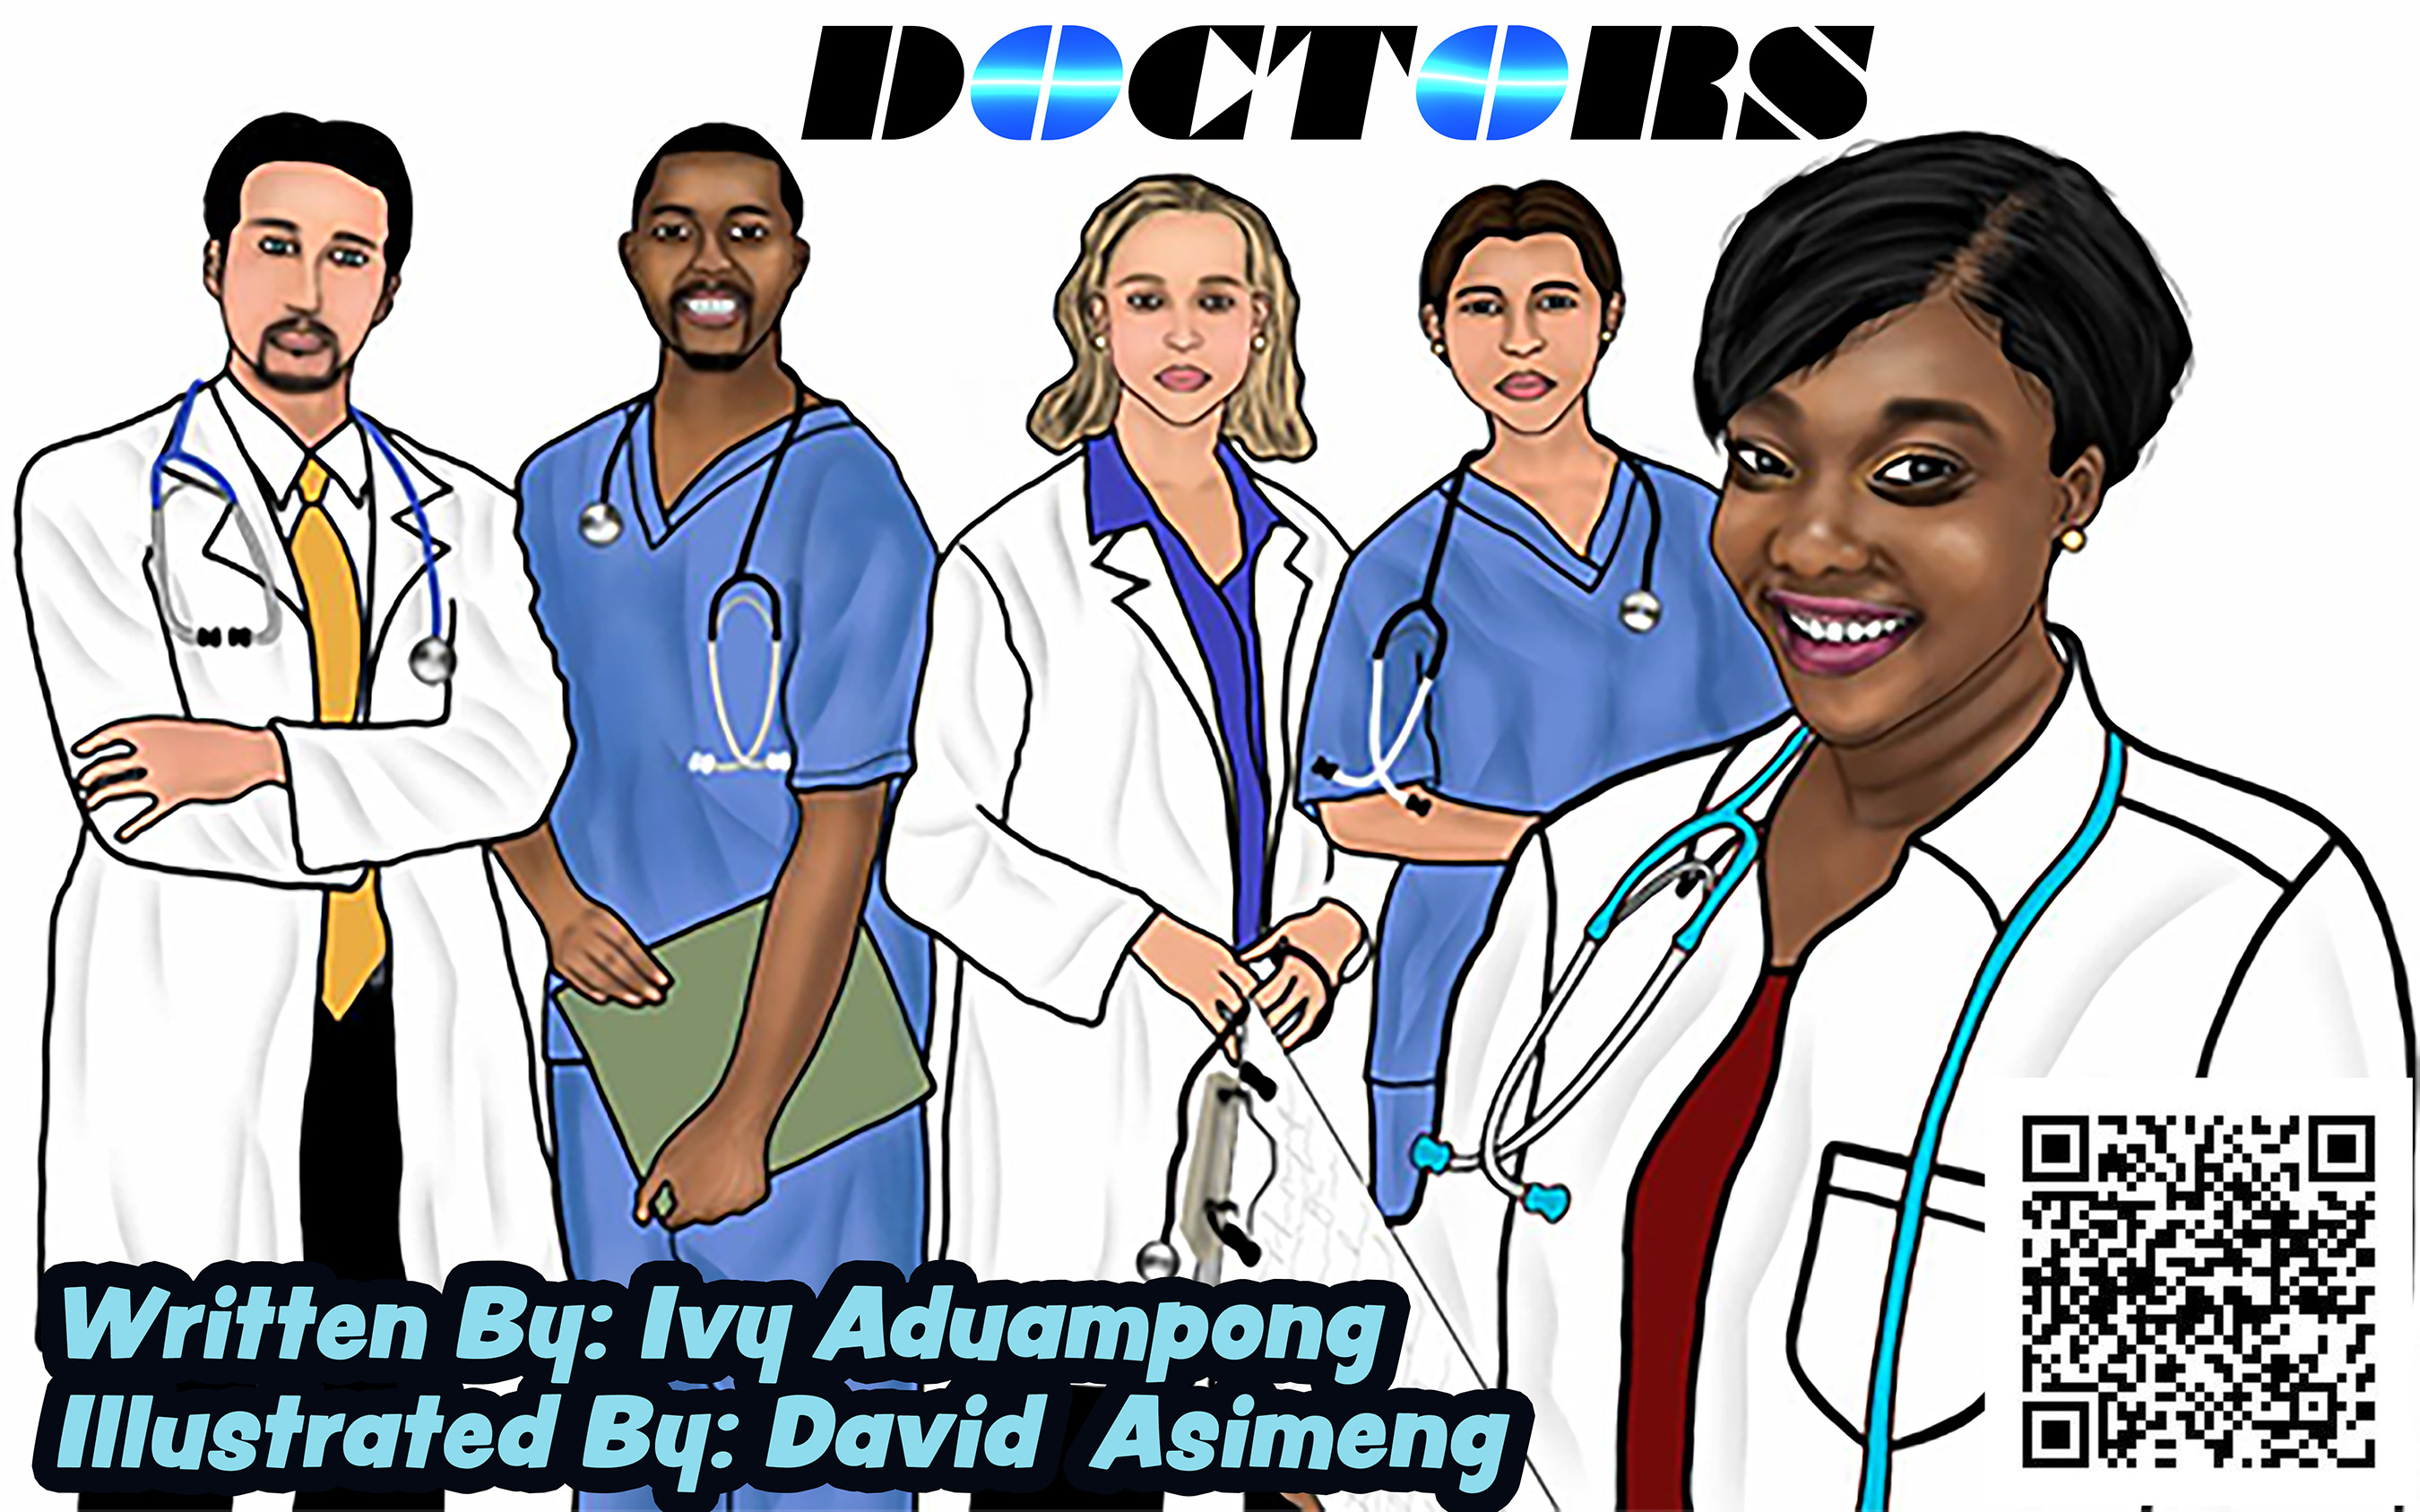 Doctors: How Doctors Work! by Ivy Aduampong and illustrated by David Asimeng, an interactive children's picture book about doctors